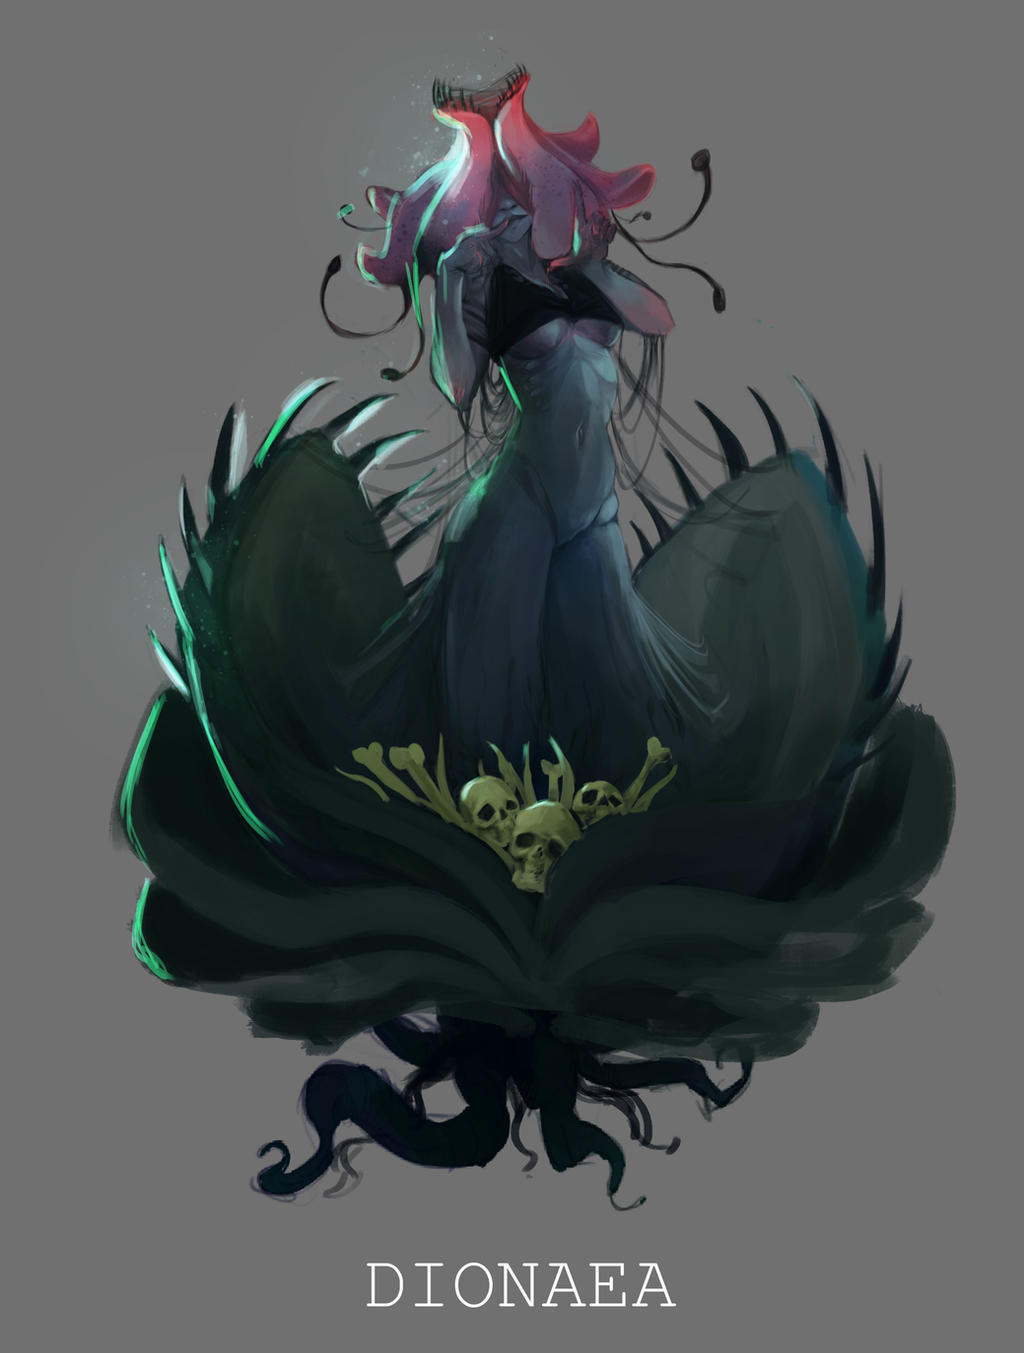 DIONAEA by sarty96